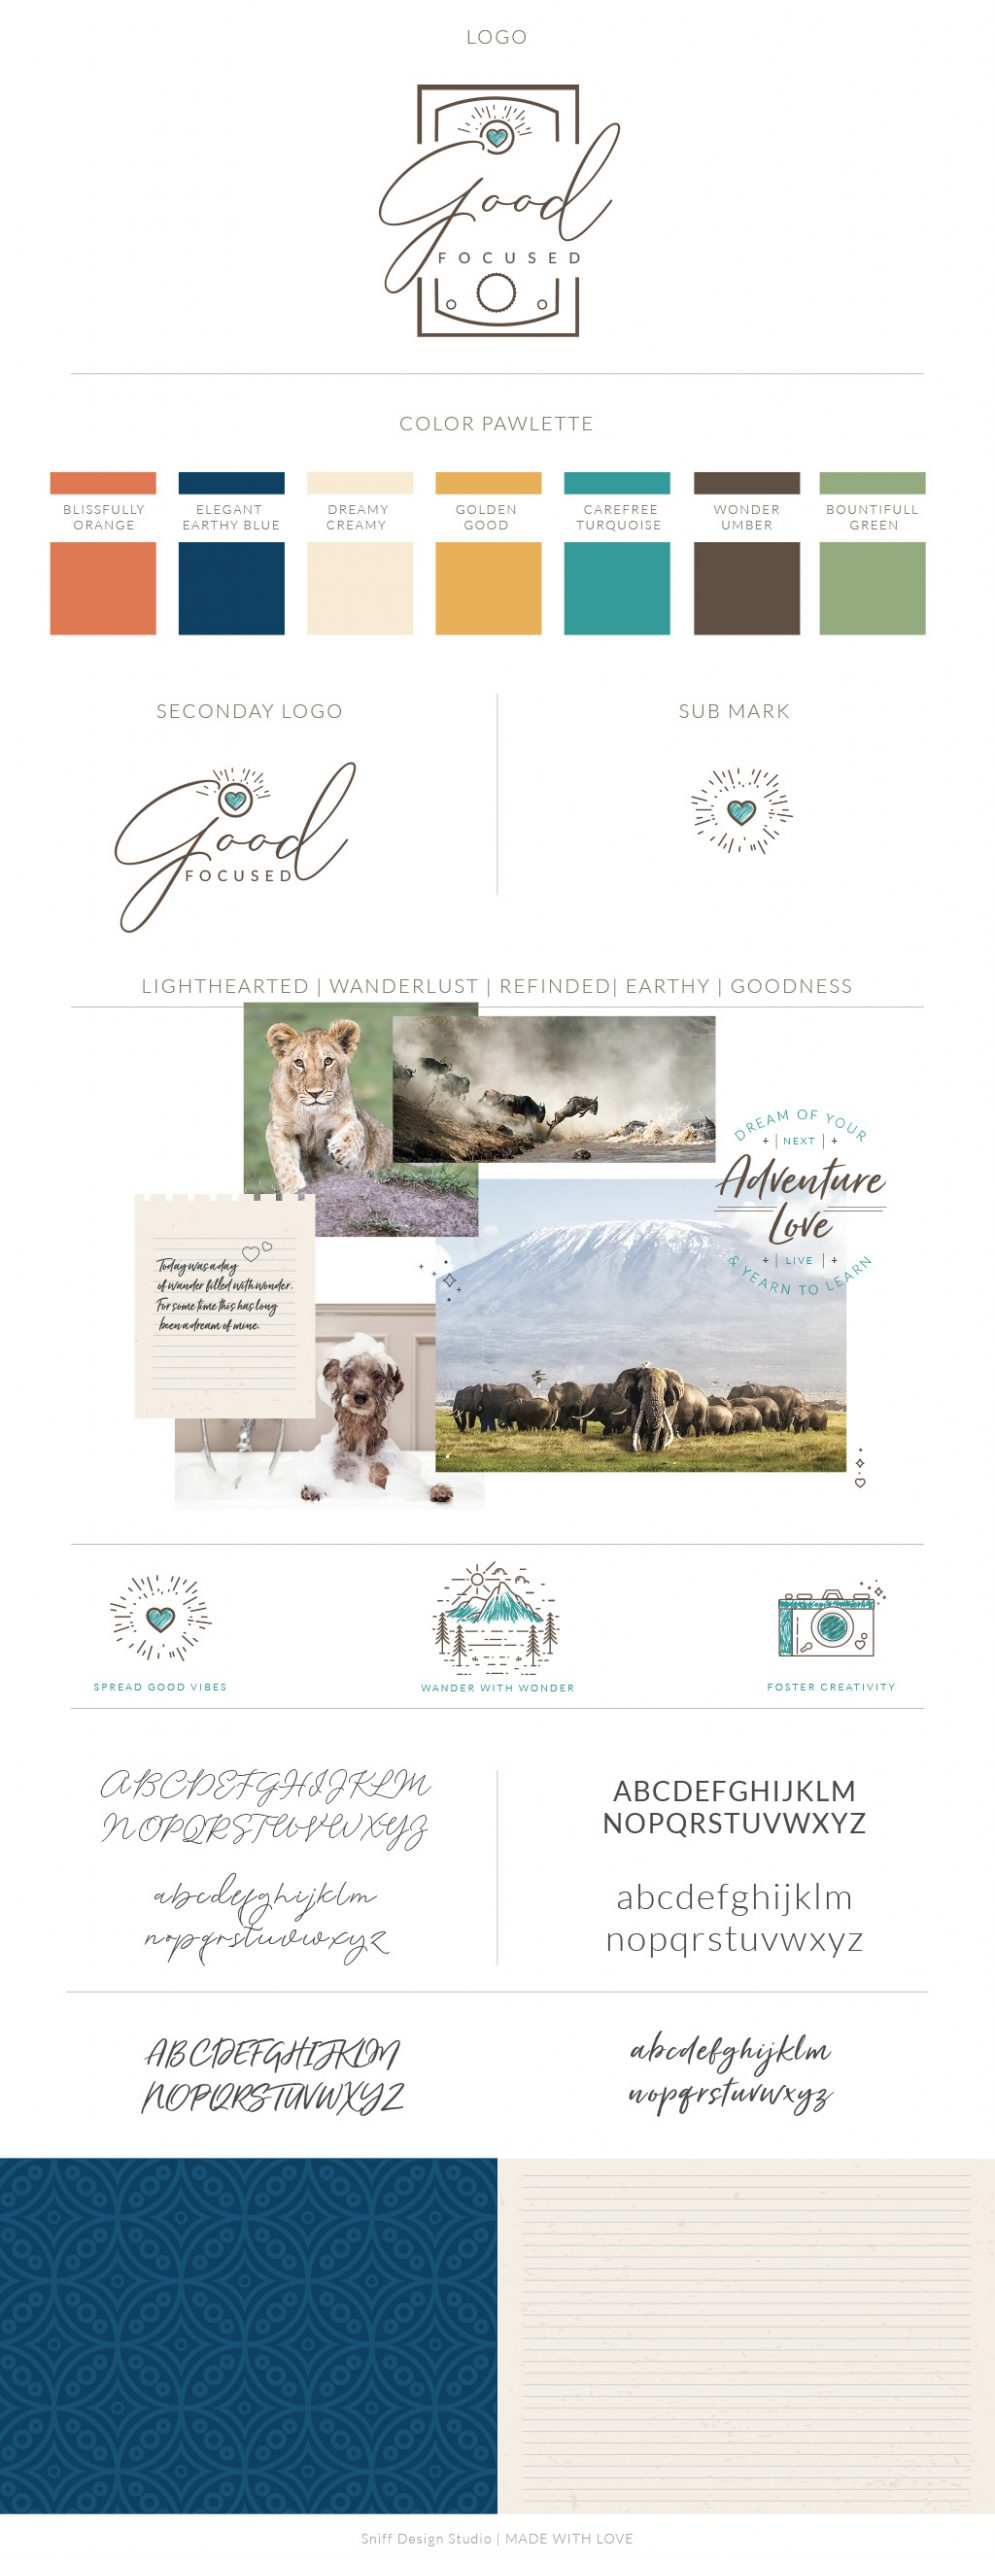 Branding design for Good Focused Pet Photography by Sniff Design Studio